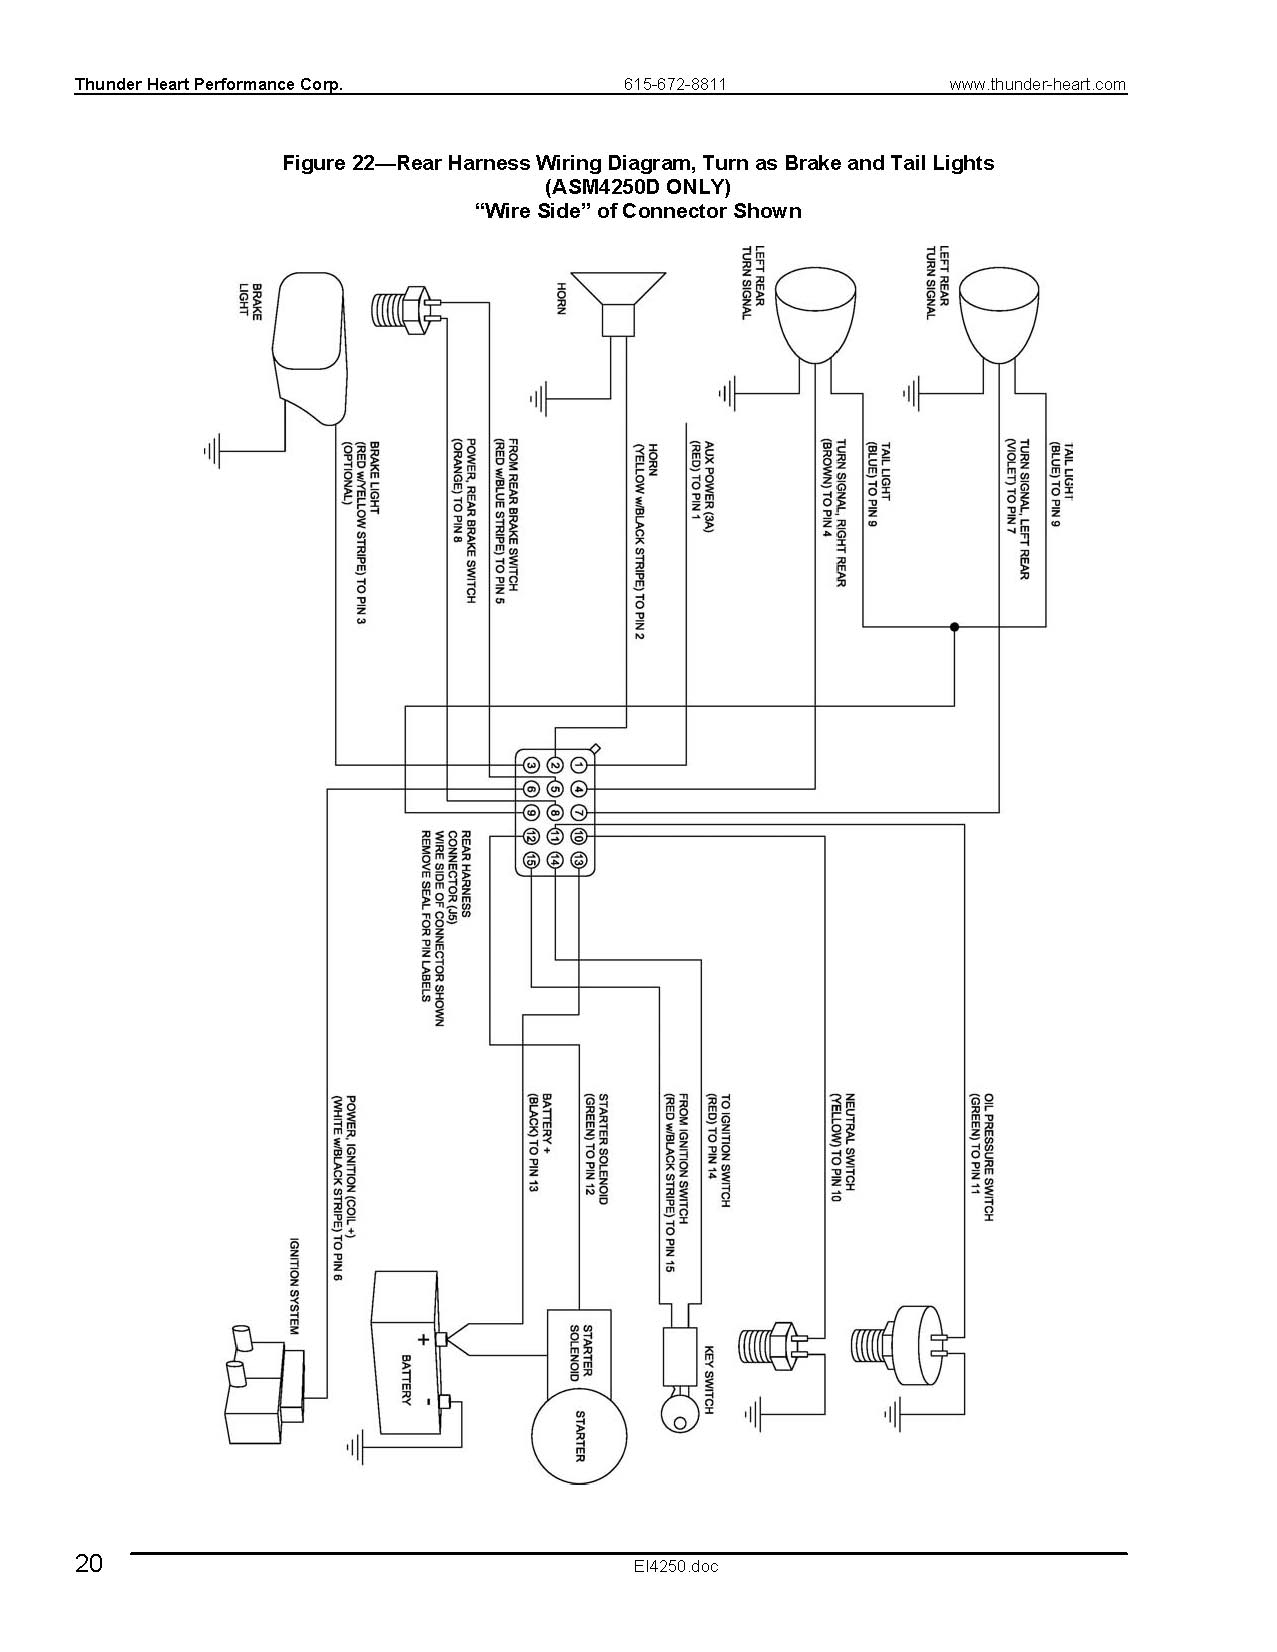 Thunderheart Wiring Harness Diagram : 35 Wiring Diagram